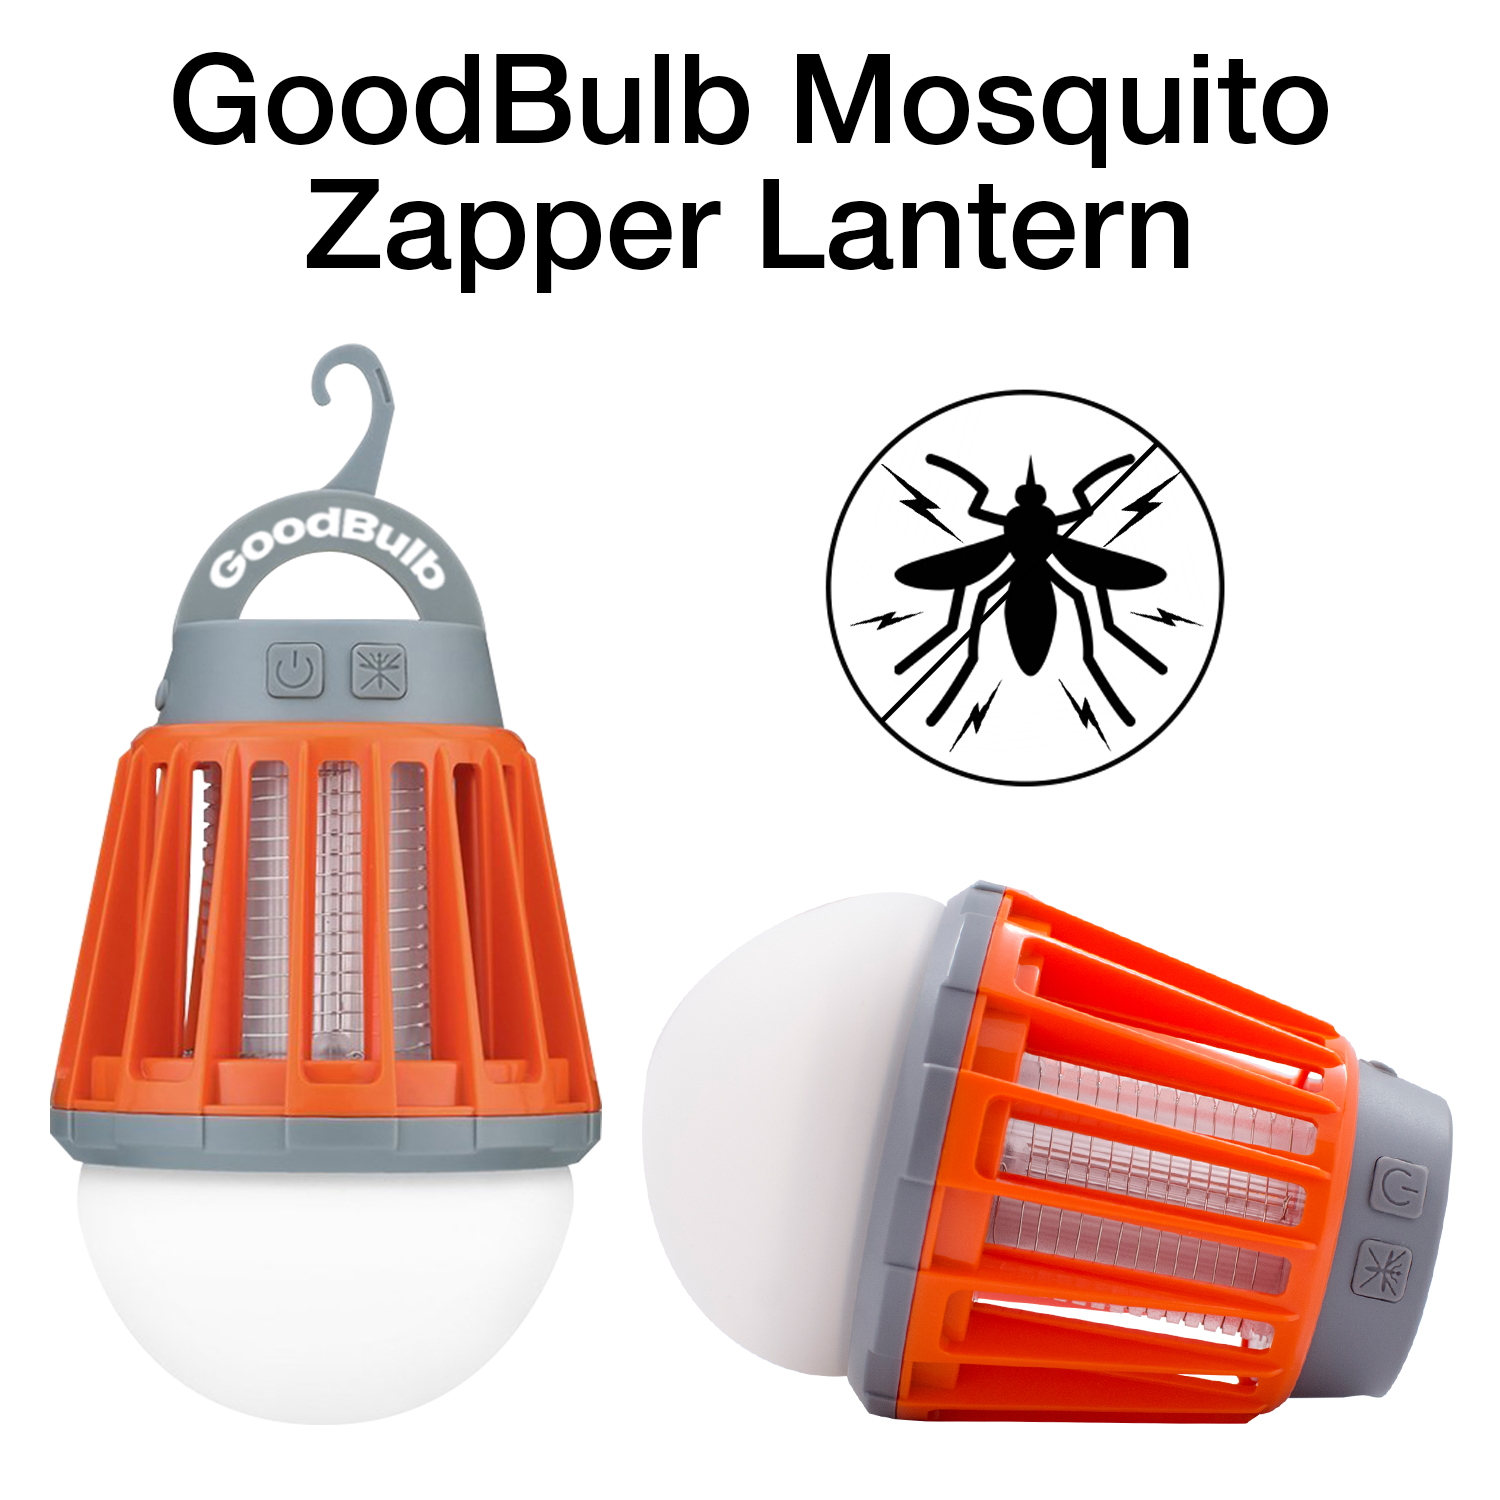 GoodBulb LED Outdoor Mosquito Zapper Waterproof and Lightning Proof Lantern with 2000mAh... by GoodBulb